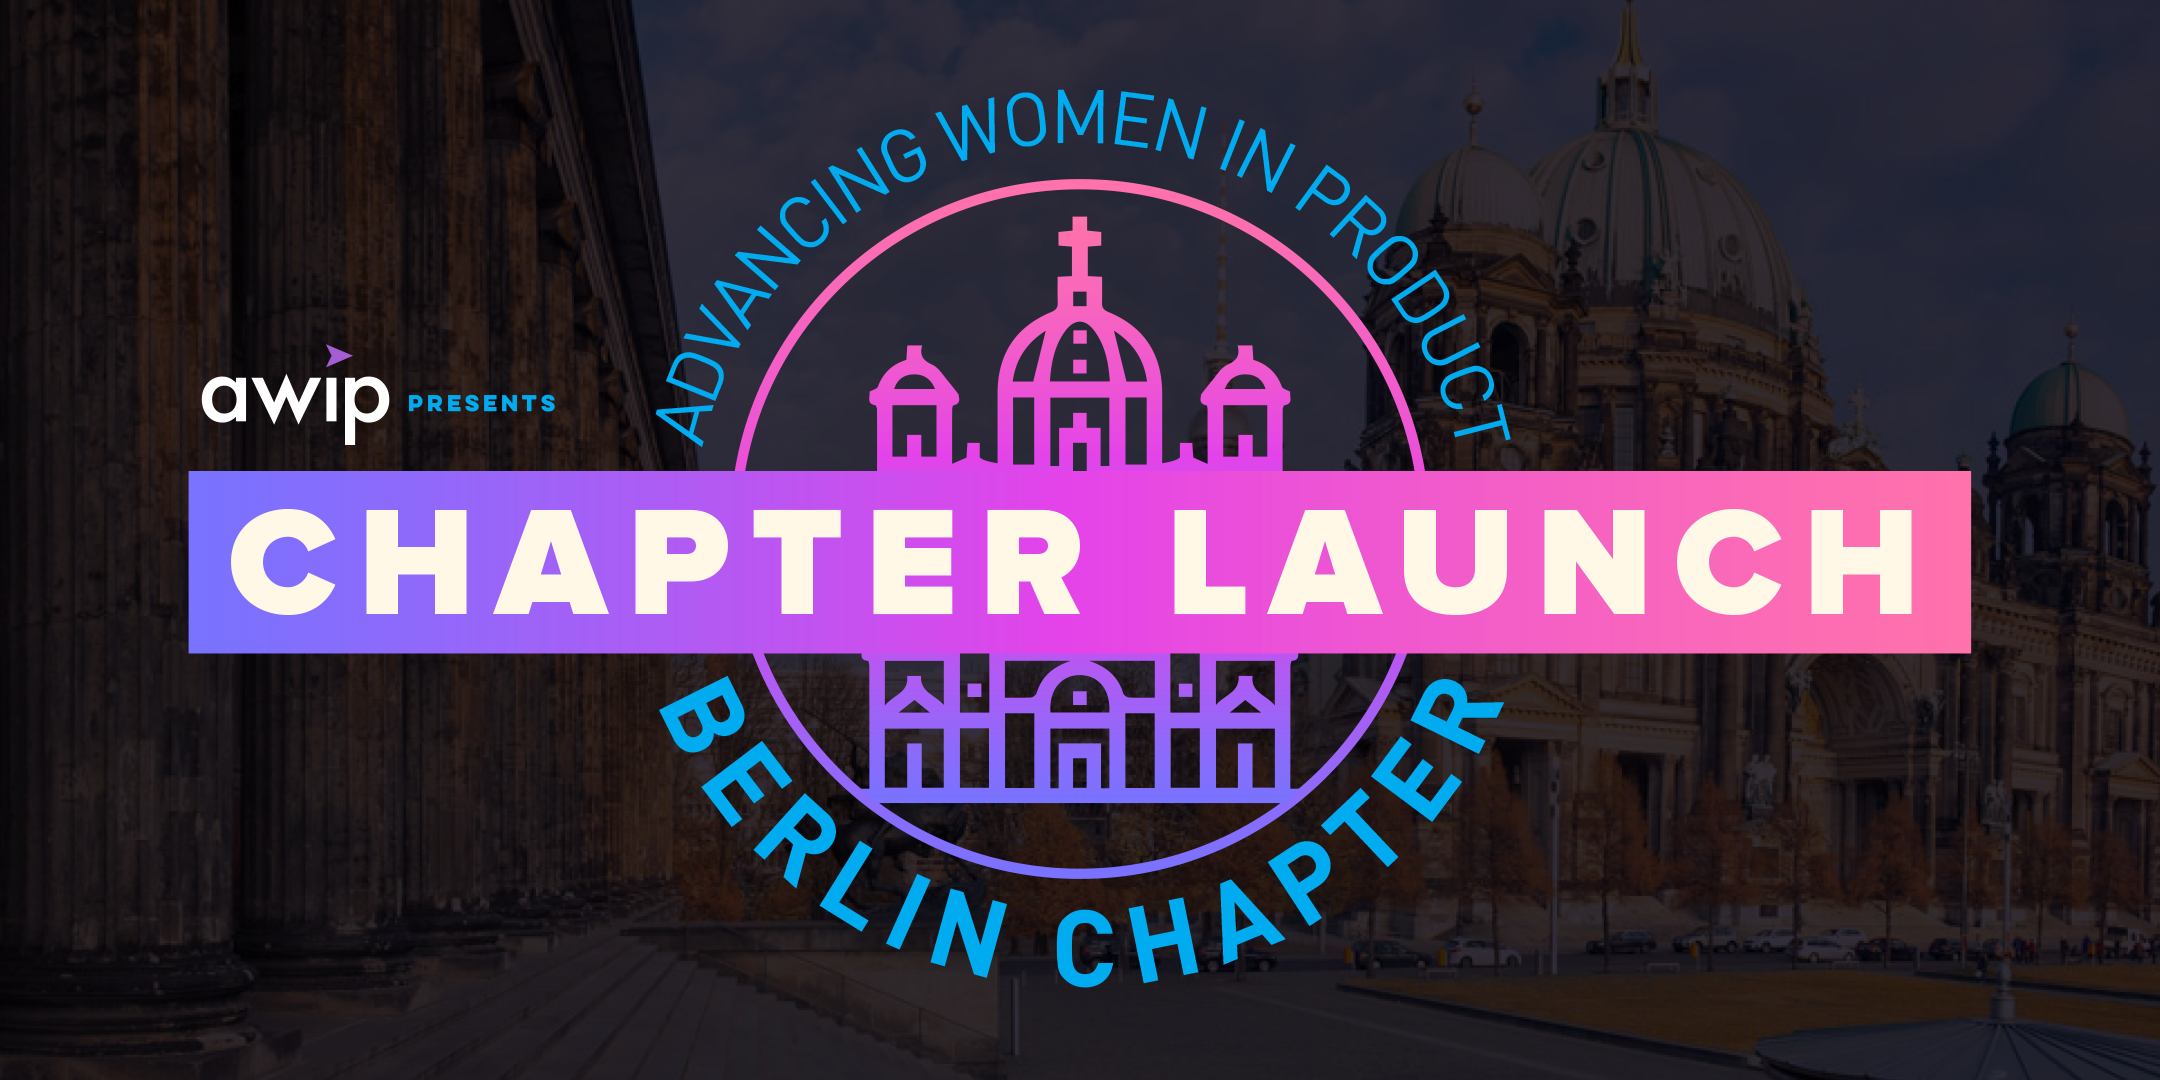 awip-berlin-chapter-banner.png